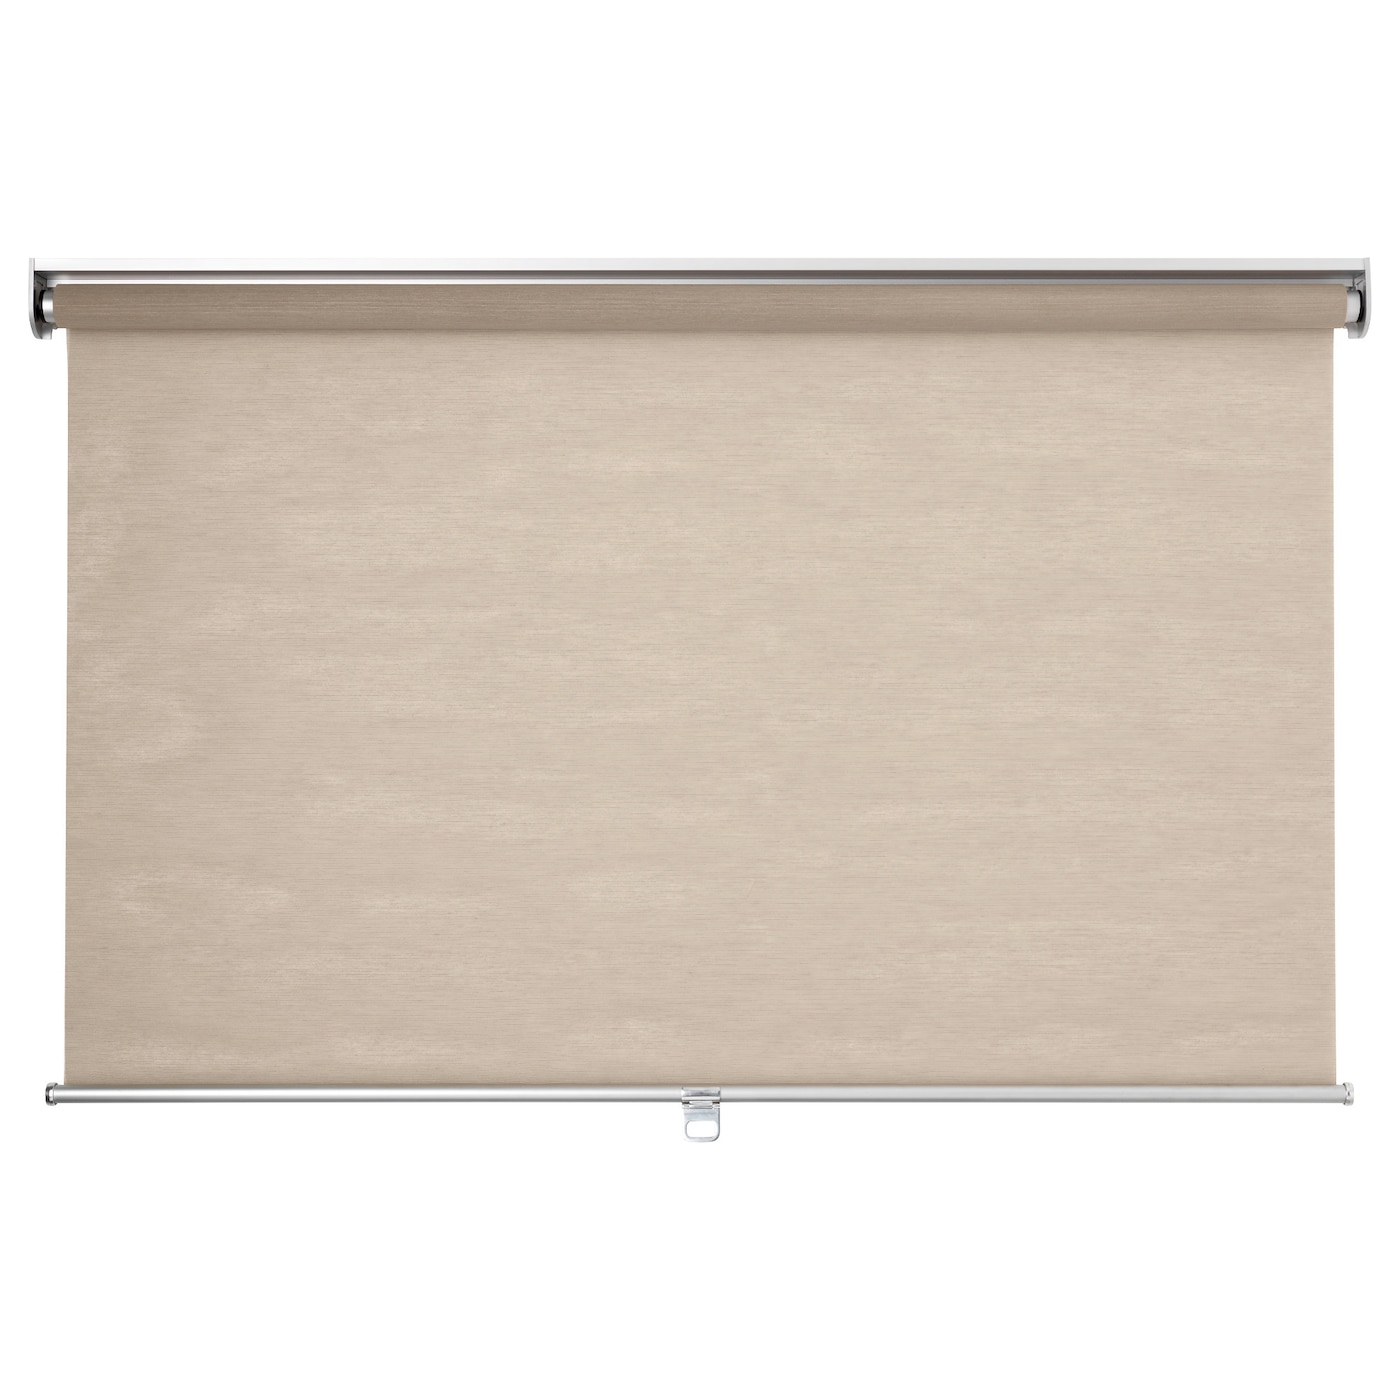 IKEA SKOGSKLÖVER roller blind The blind is cordless for increased child safety.